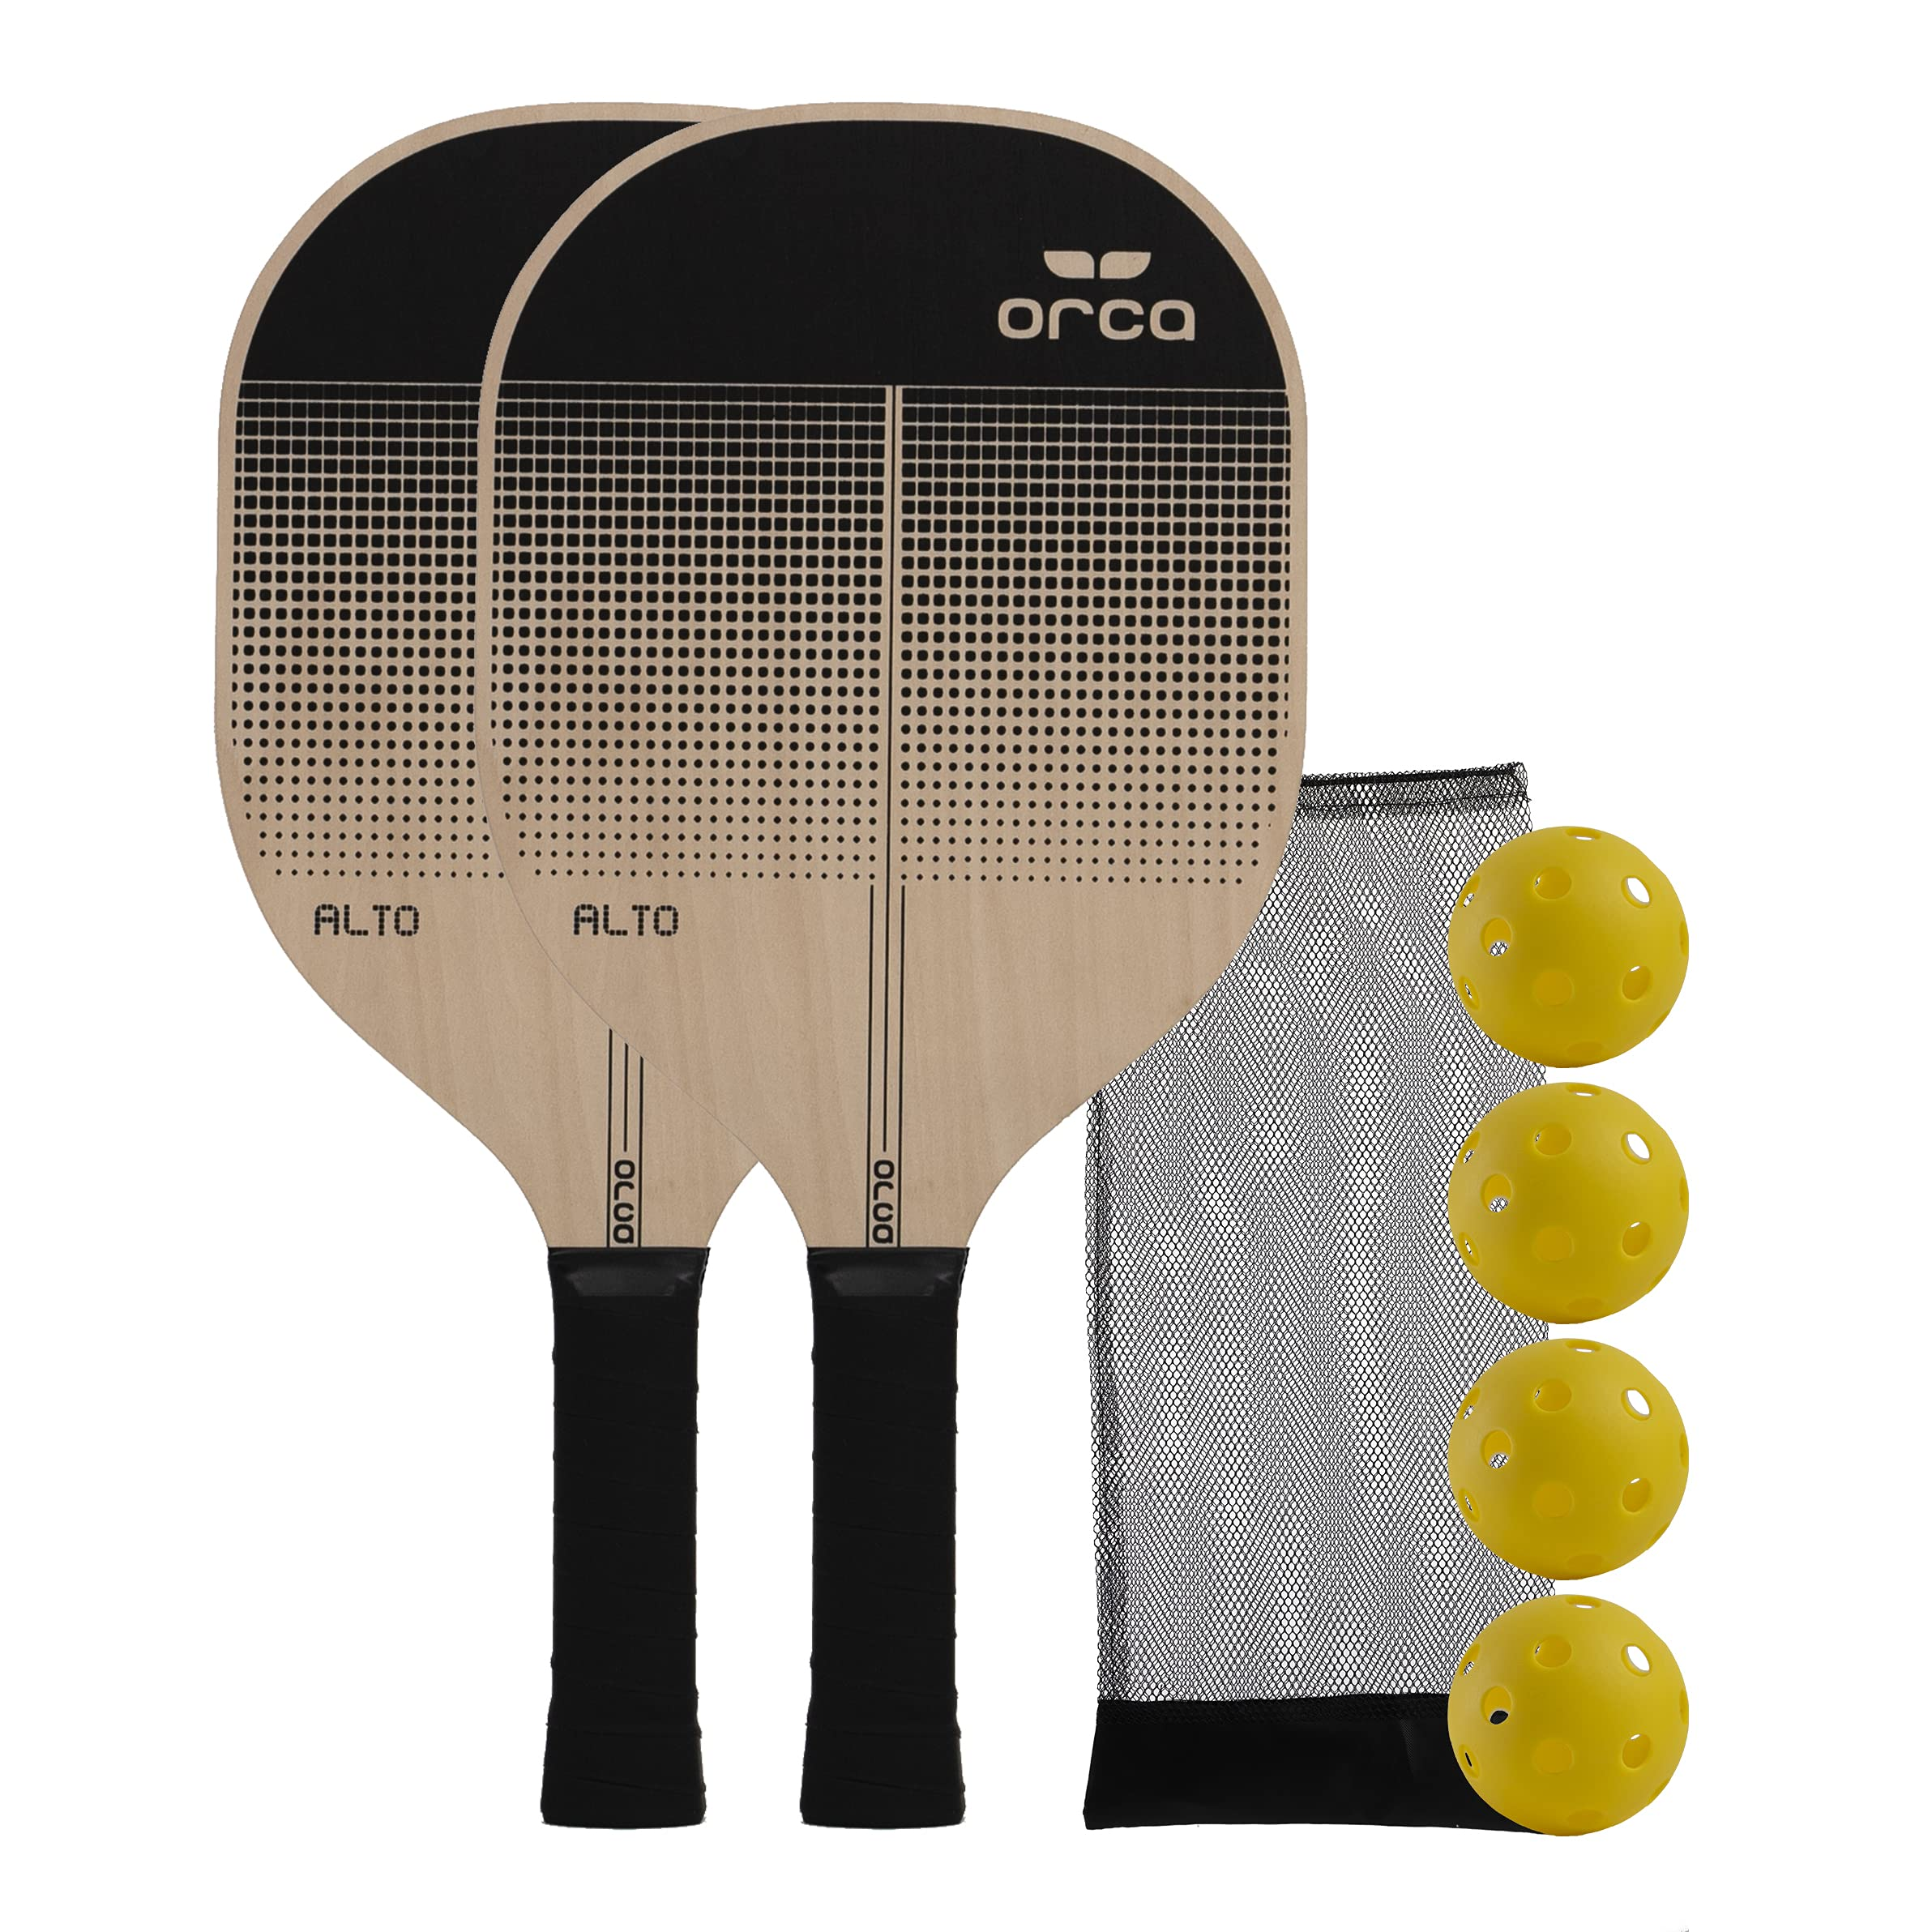 Orca Paddle Co. Pickleball Paddles 1 Player and 2 Player Set